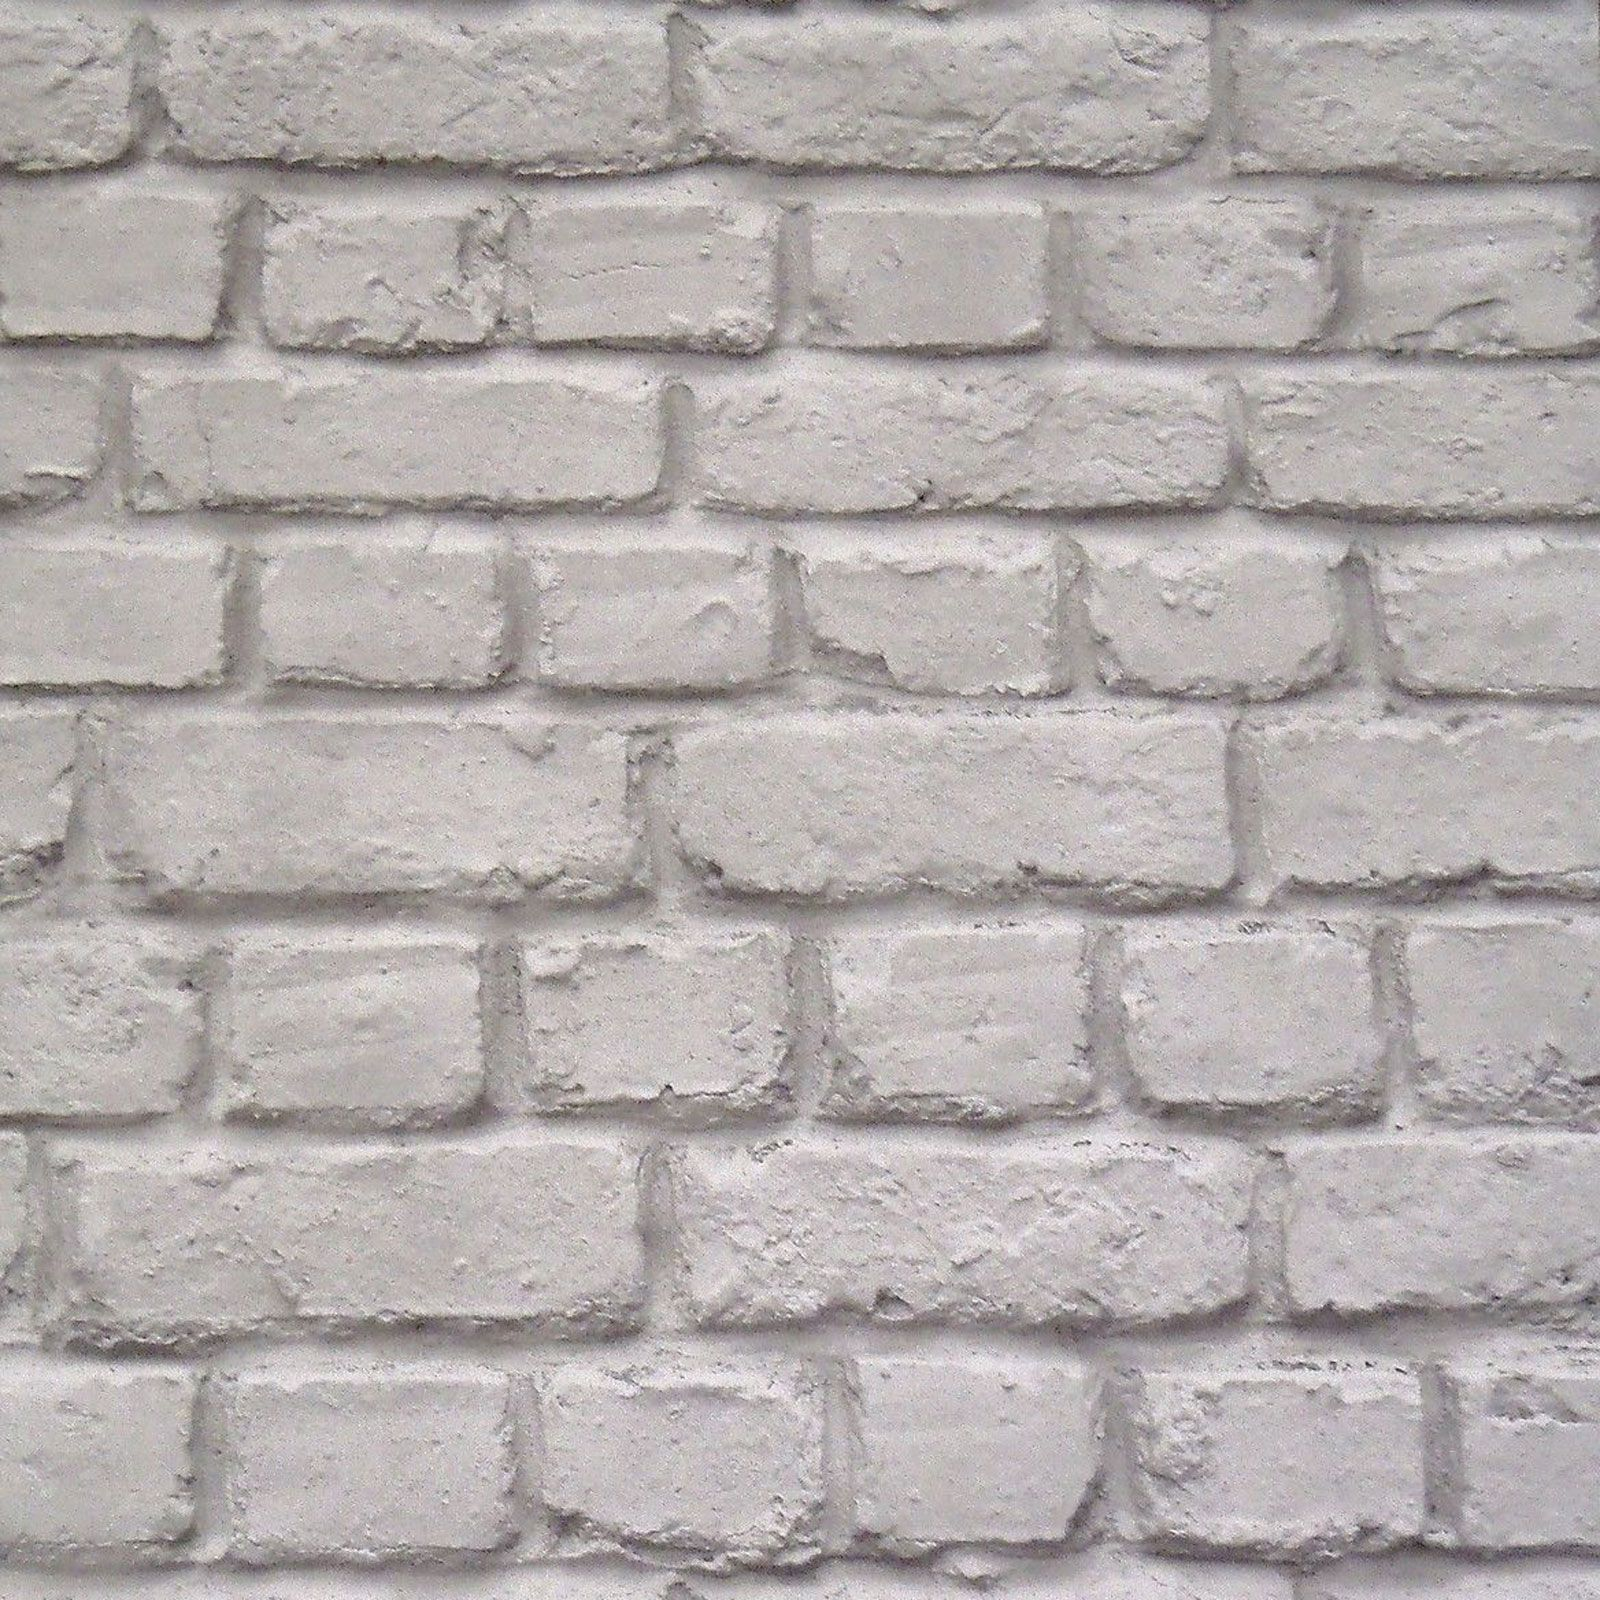 Cornish Stone Effect Wallpaper From B Q: GREY BRICK EFFECT WALLPAPER SUITABLE FOR ANY ROOM